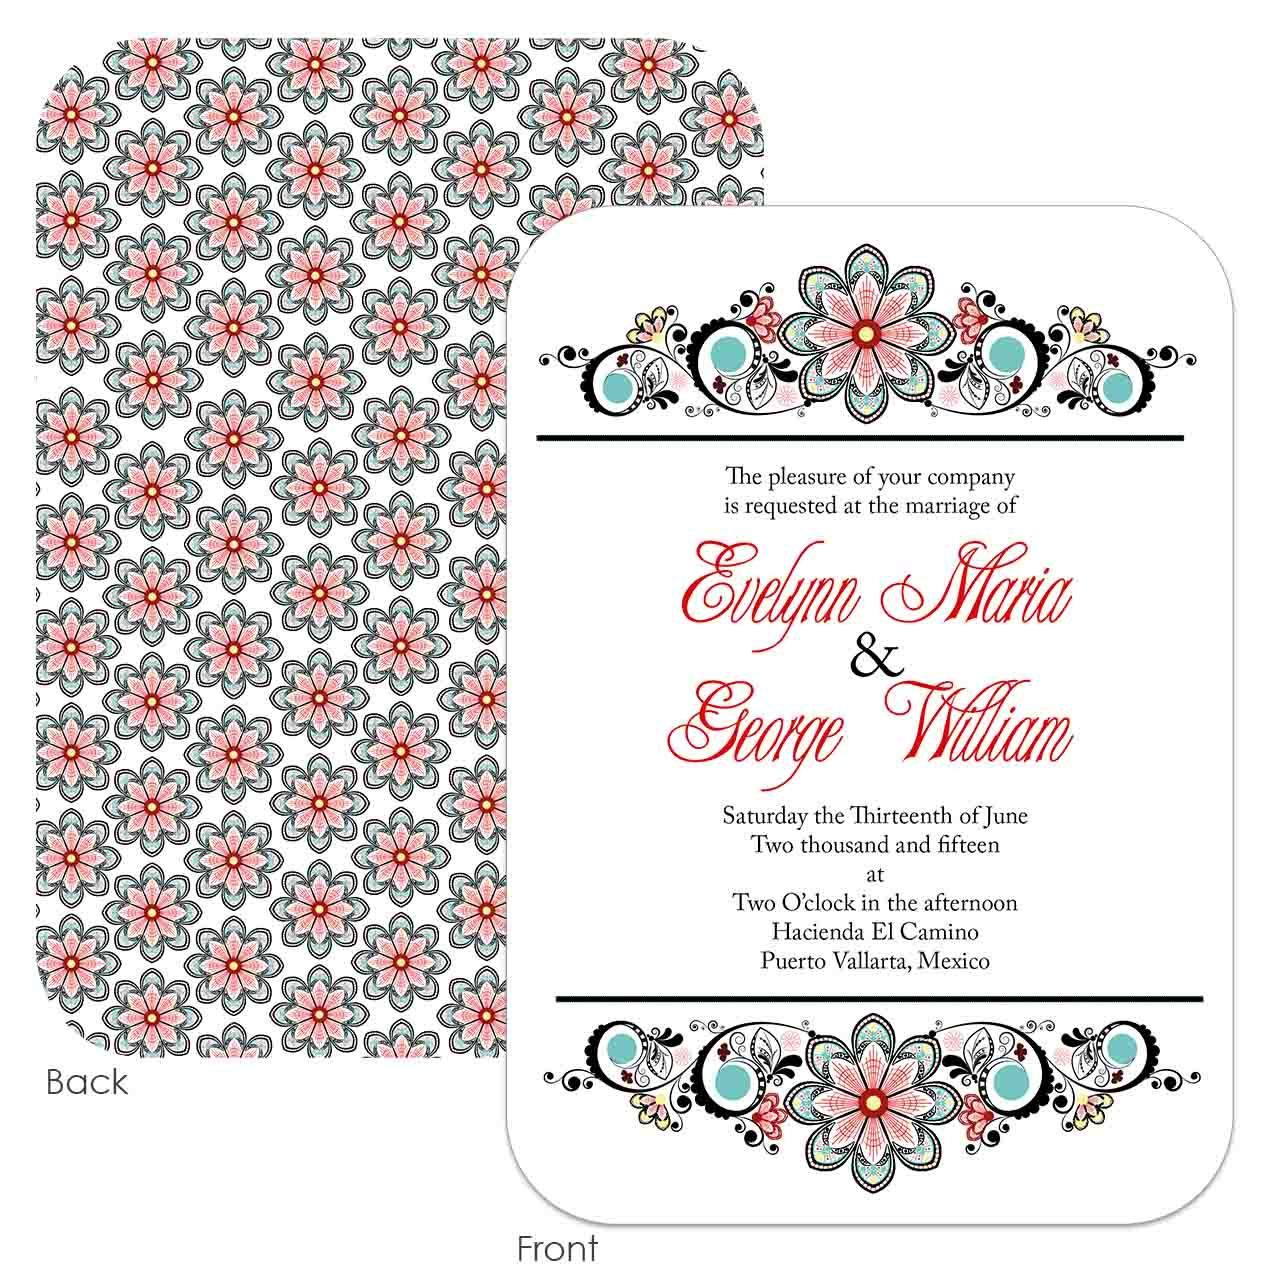 Spanish Dancer Wedding Invitation - Cinemashopboutique | Wedding ...